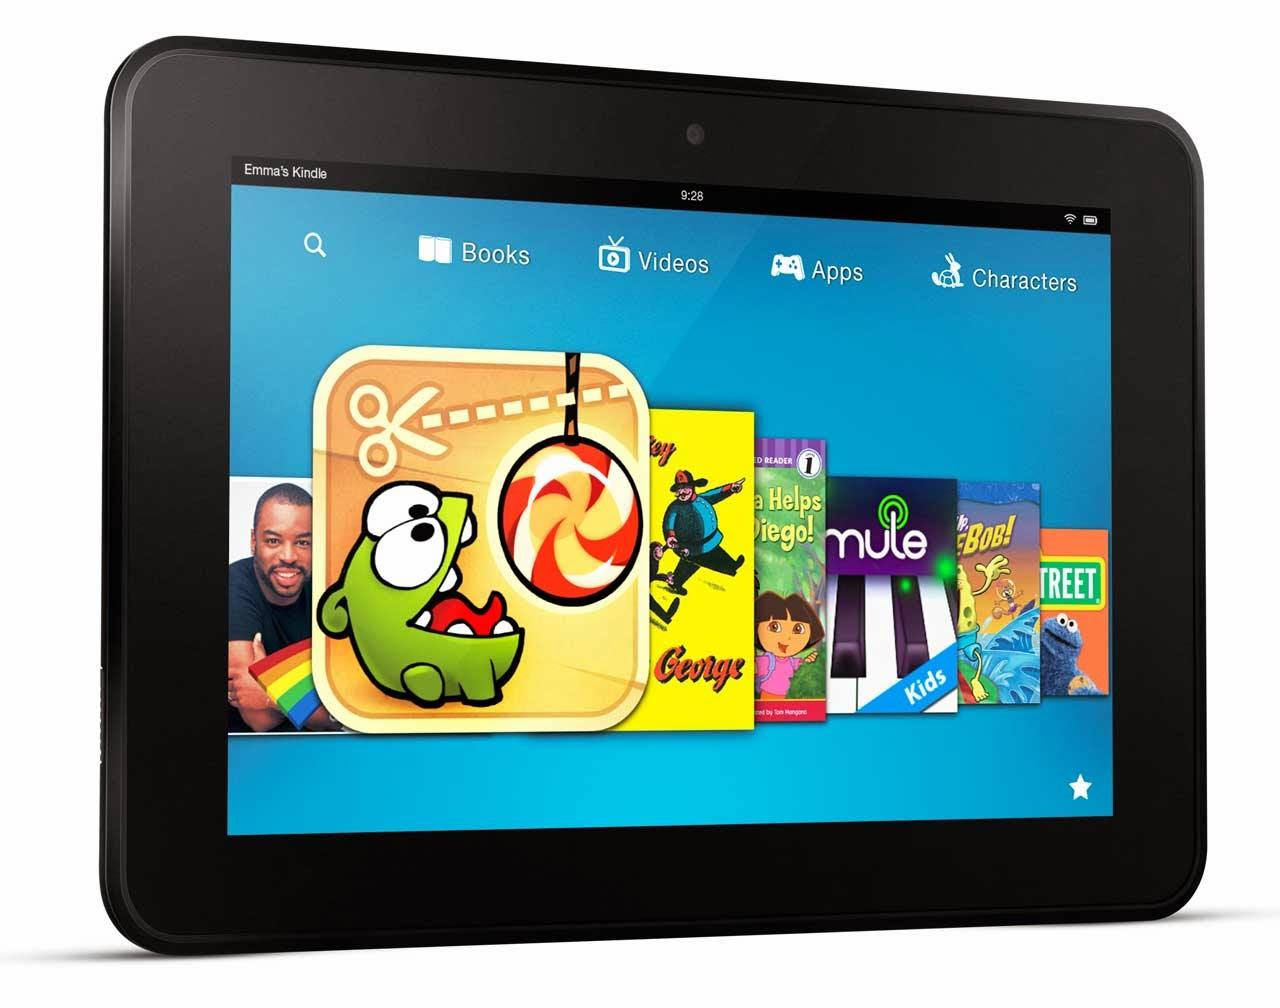 http://www.amazon.com/Best-Sellers-Electronics-Computer-Tablets/zgbs/electronics/1232597011/?_encoding=UTF8&camp=1789&creative=390957&linkCode=ur2&tag=f0538-20